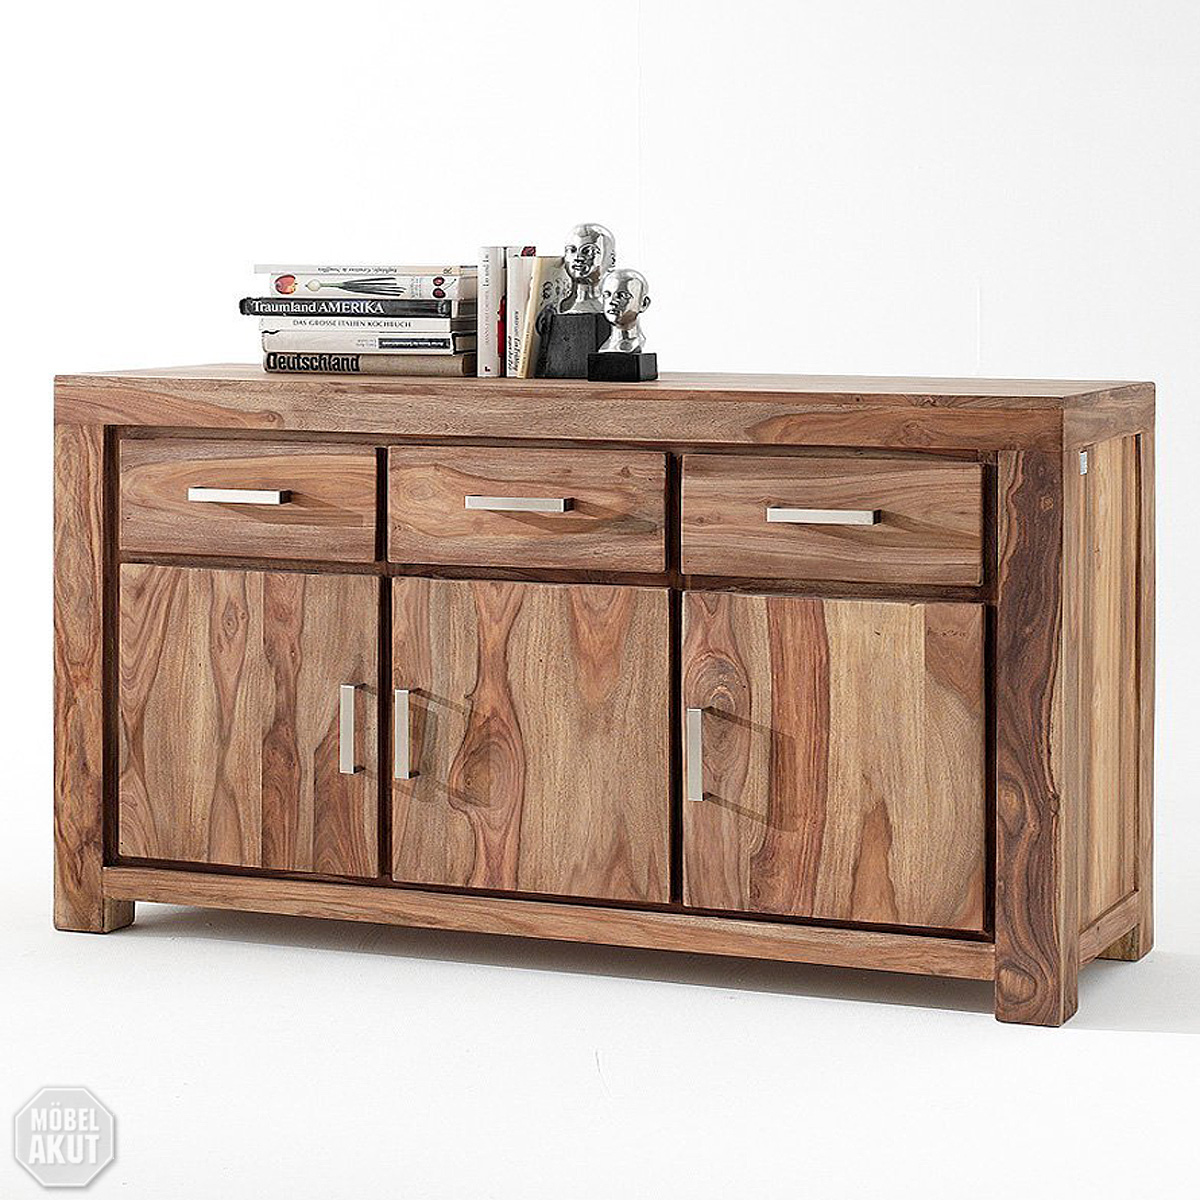 Tv kommode anrichte highboard sideboard vertiko hartford b - Sheesham schrank ...